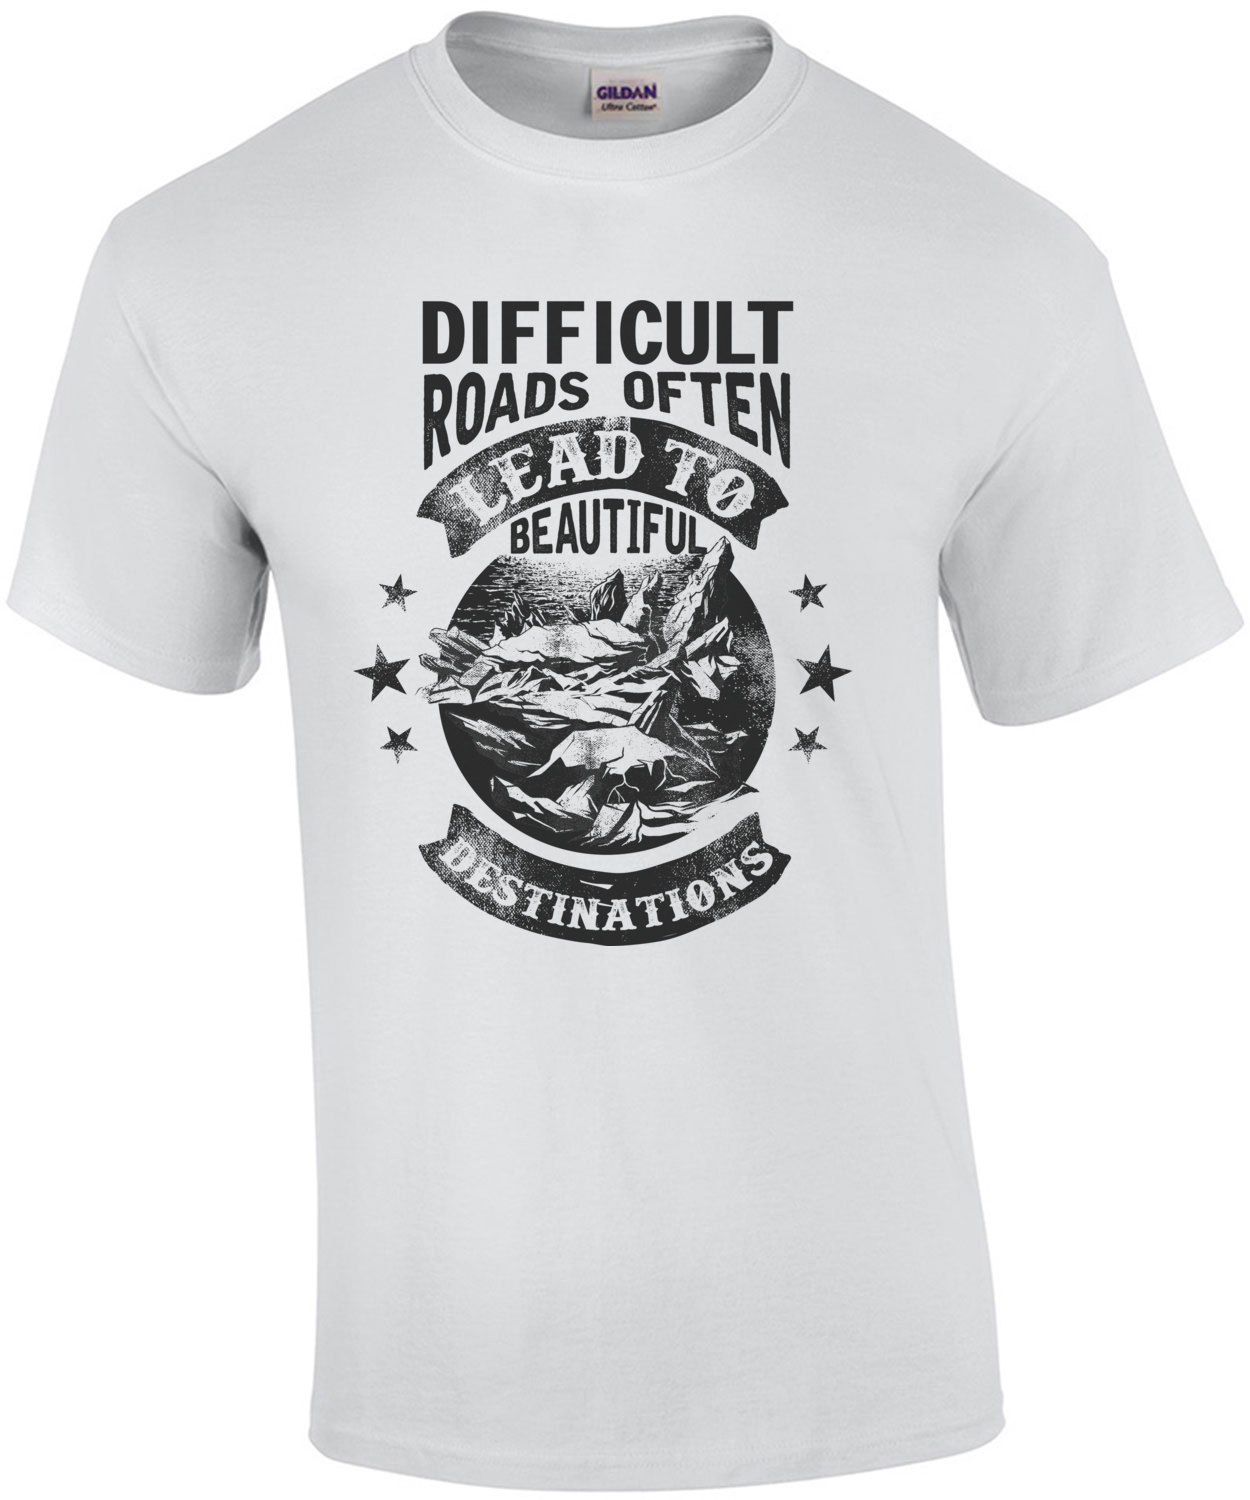 Difficult Roads Often Lead To Beautiful Destinations - Inspirational T-Shirt